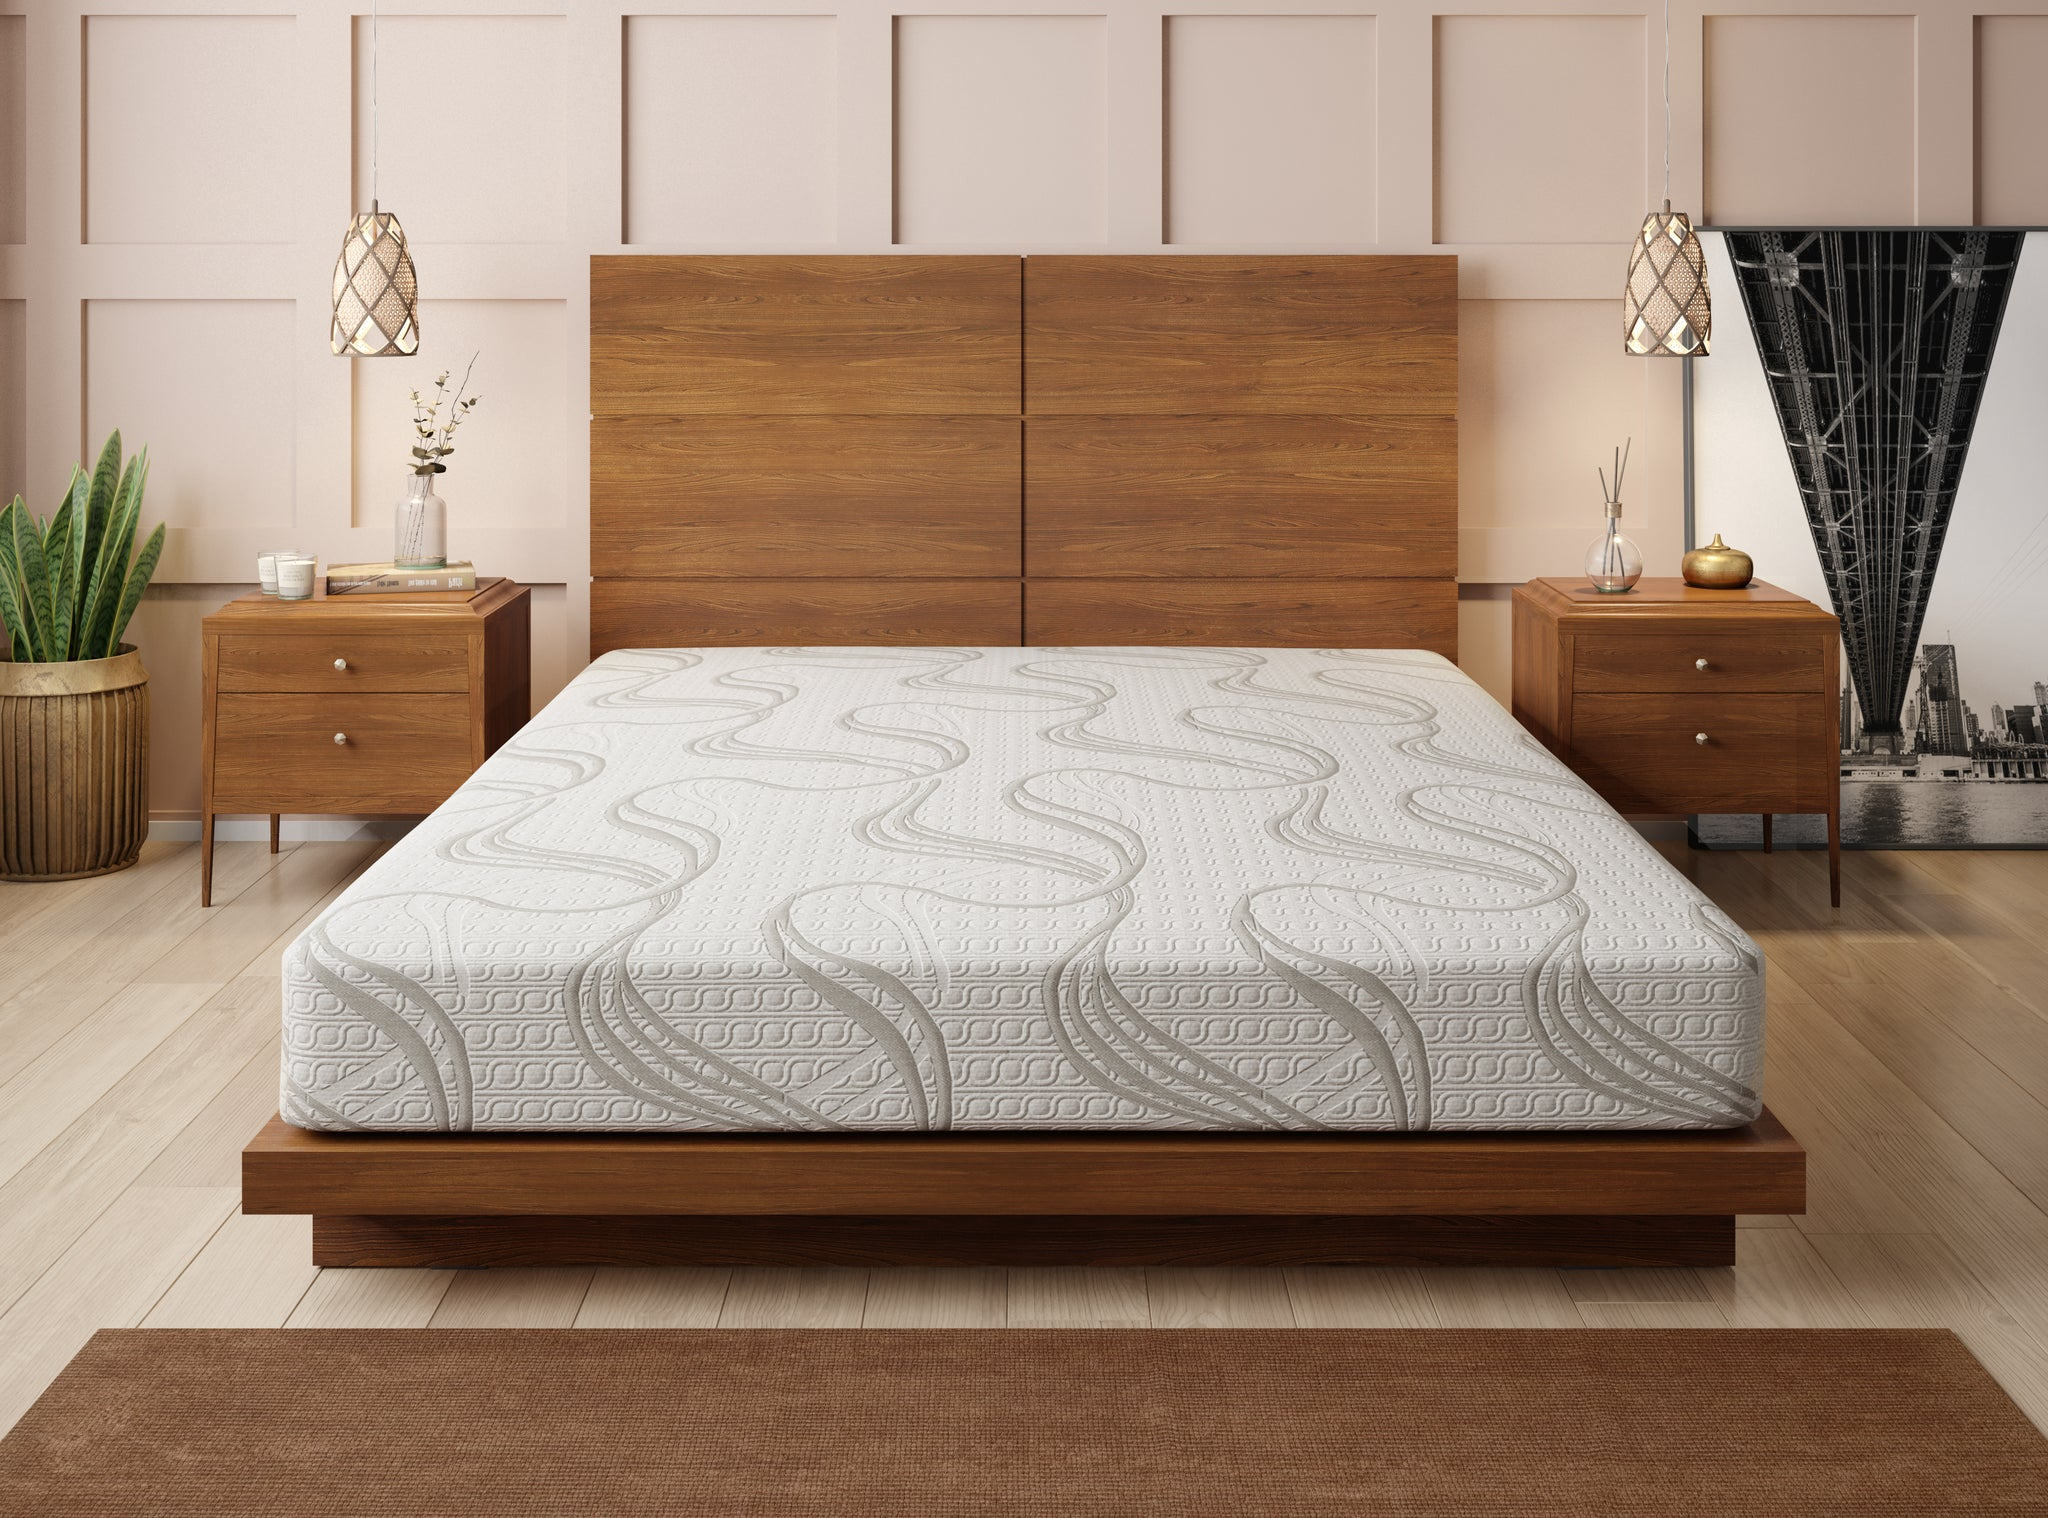 know back new before you what for pain of should furniture mattress reno best buying discounters the